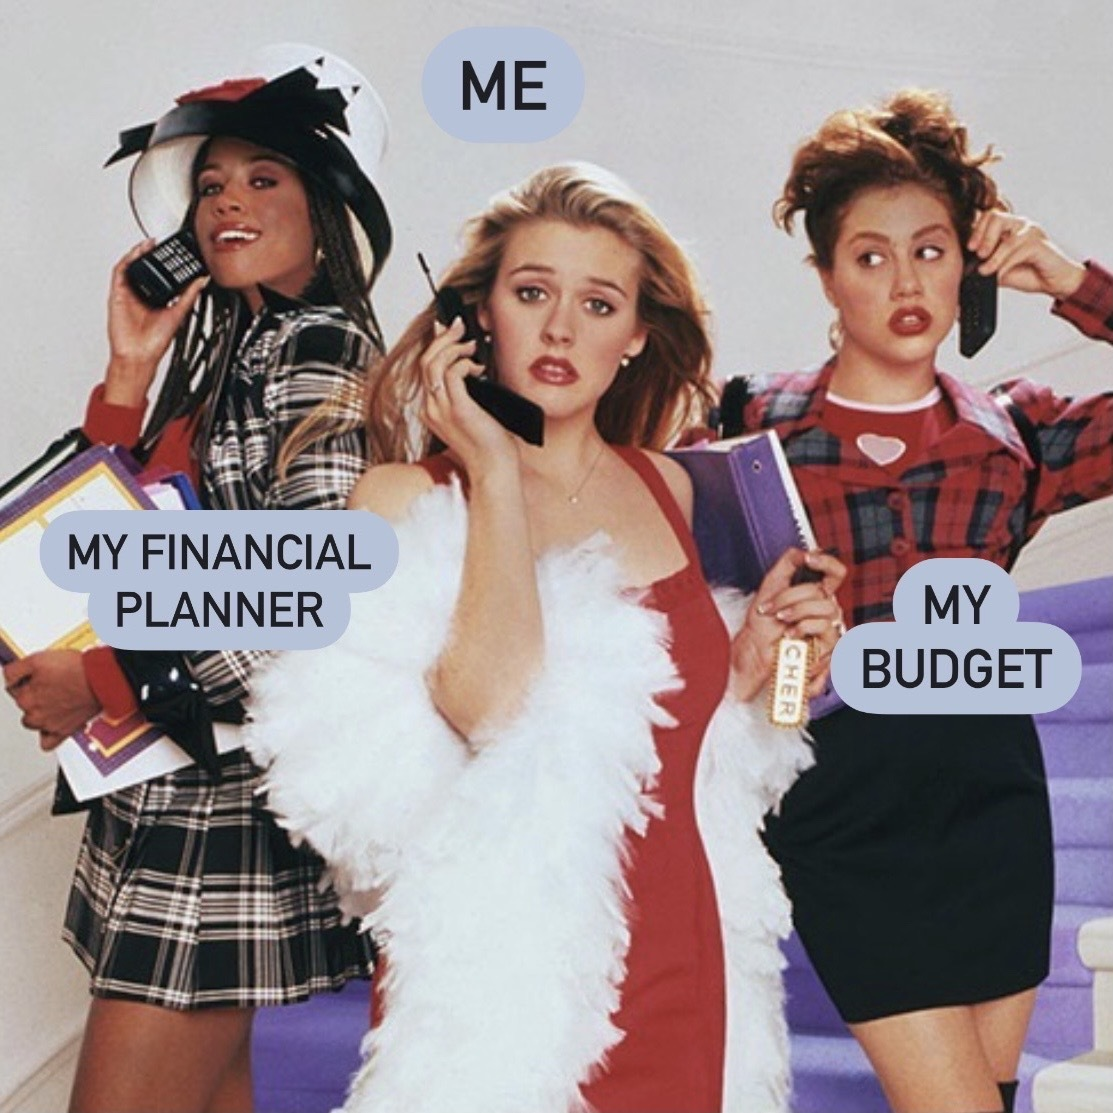 """Dionne, Cher, and Tai from """"Clueless."""" Cher is labelled """"me,"""" and the others are """"my financial planner"""" and """"my budget."""""""